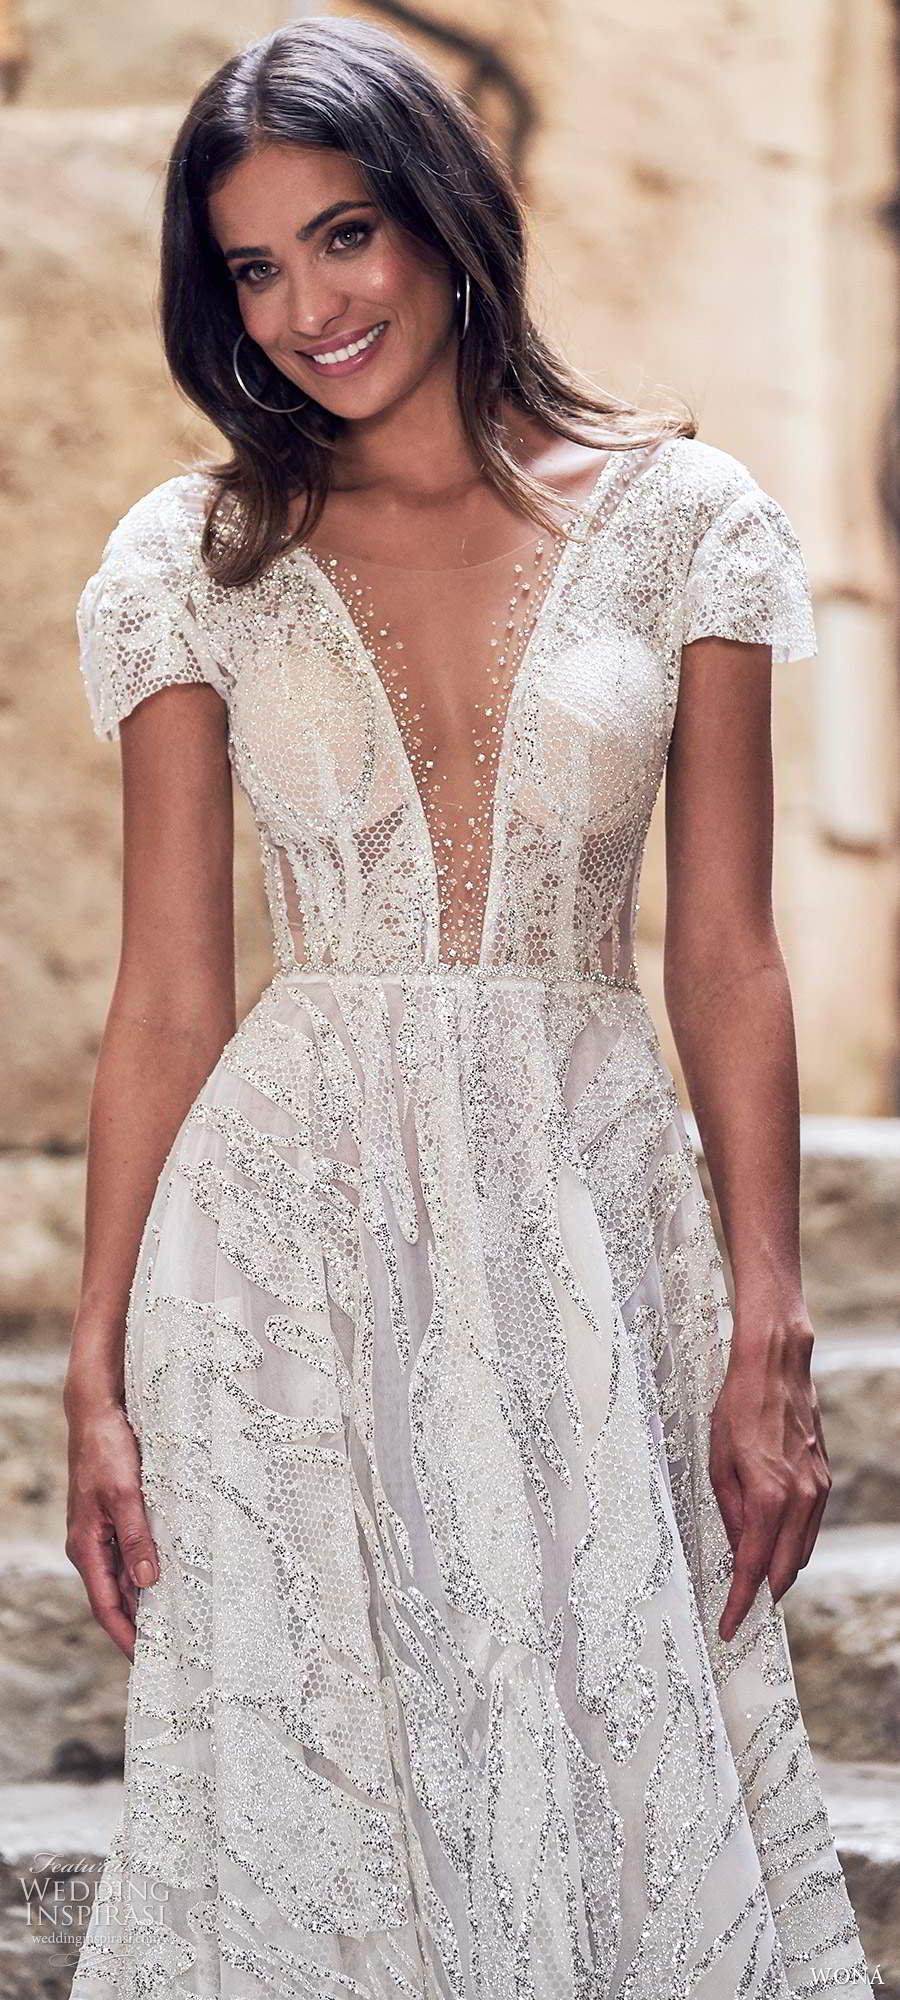 wona fall 2020 bridal short sleeves plunging v neckline fully embellished a line ball gown wedding dress low scoop back cathedral train (9) zv